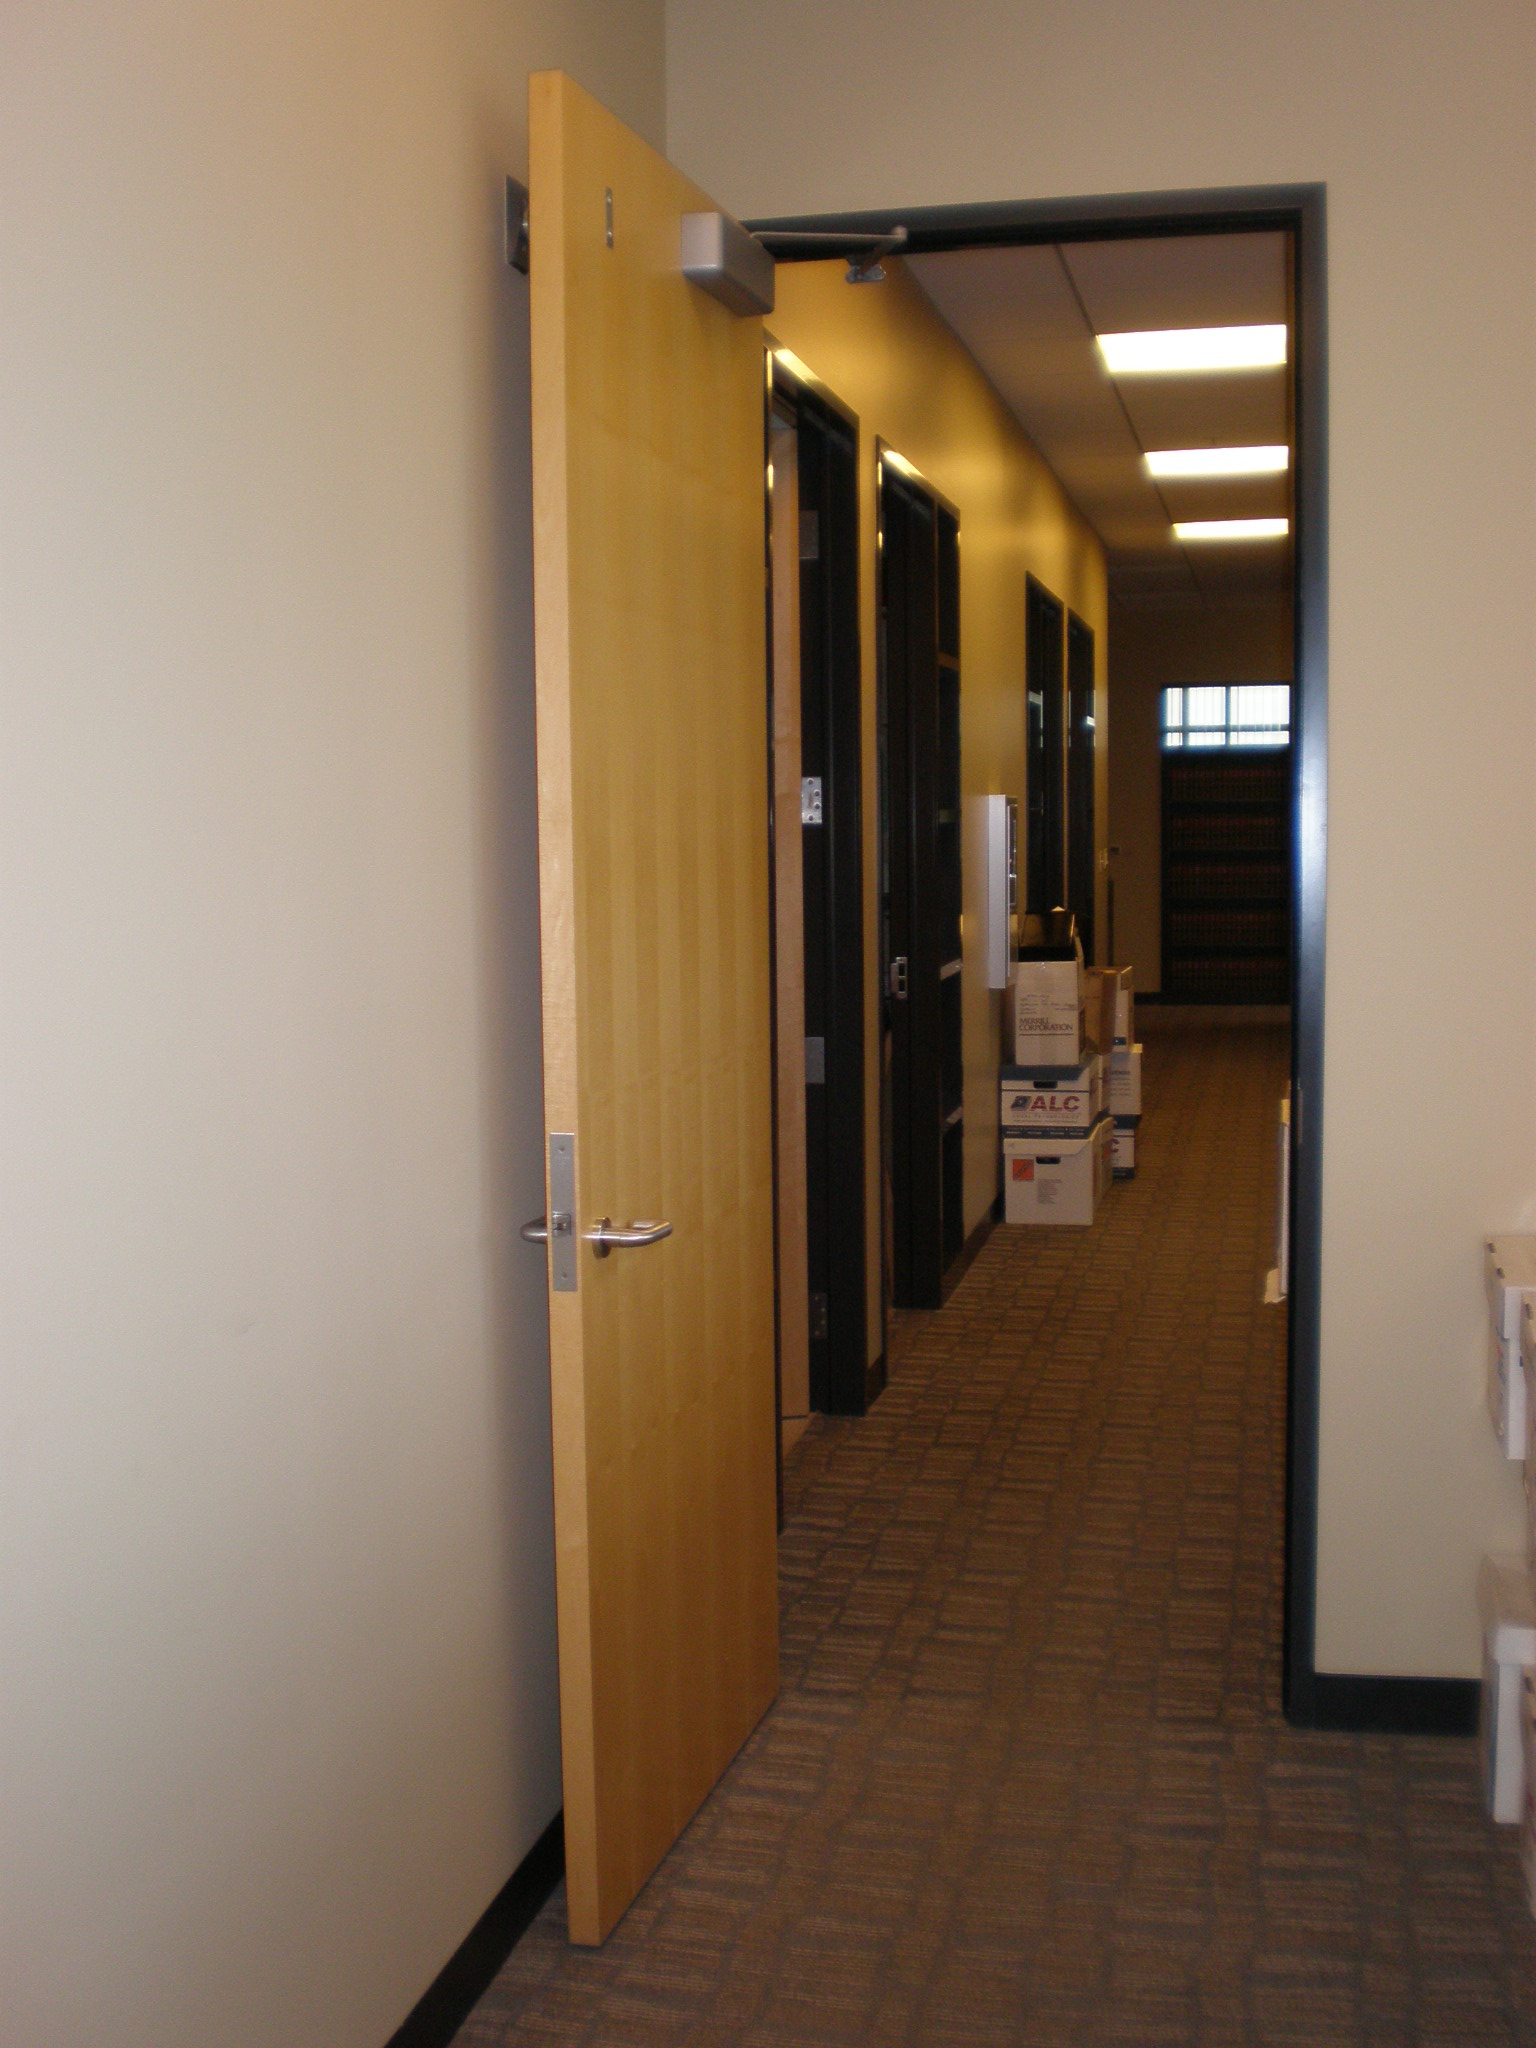 Fire rated wood doors in UAE are a common choice of the householders